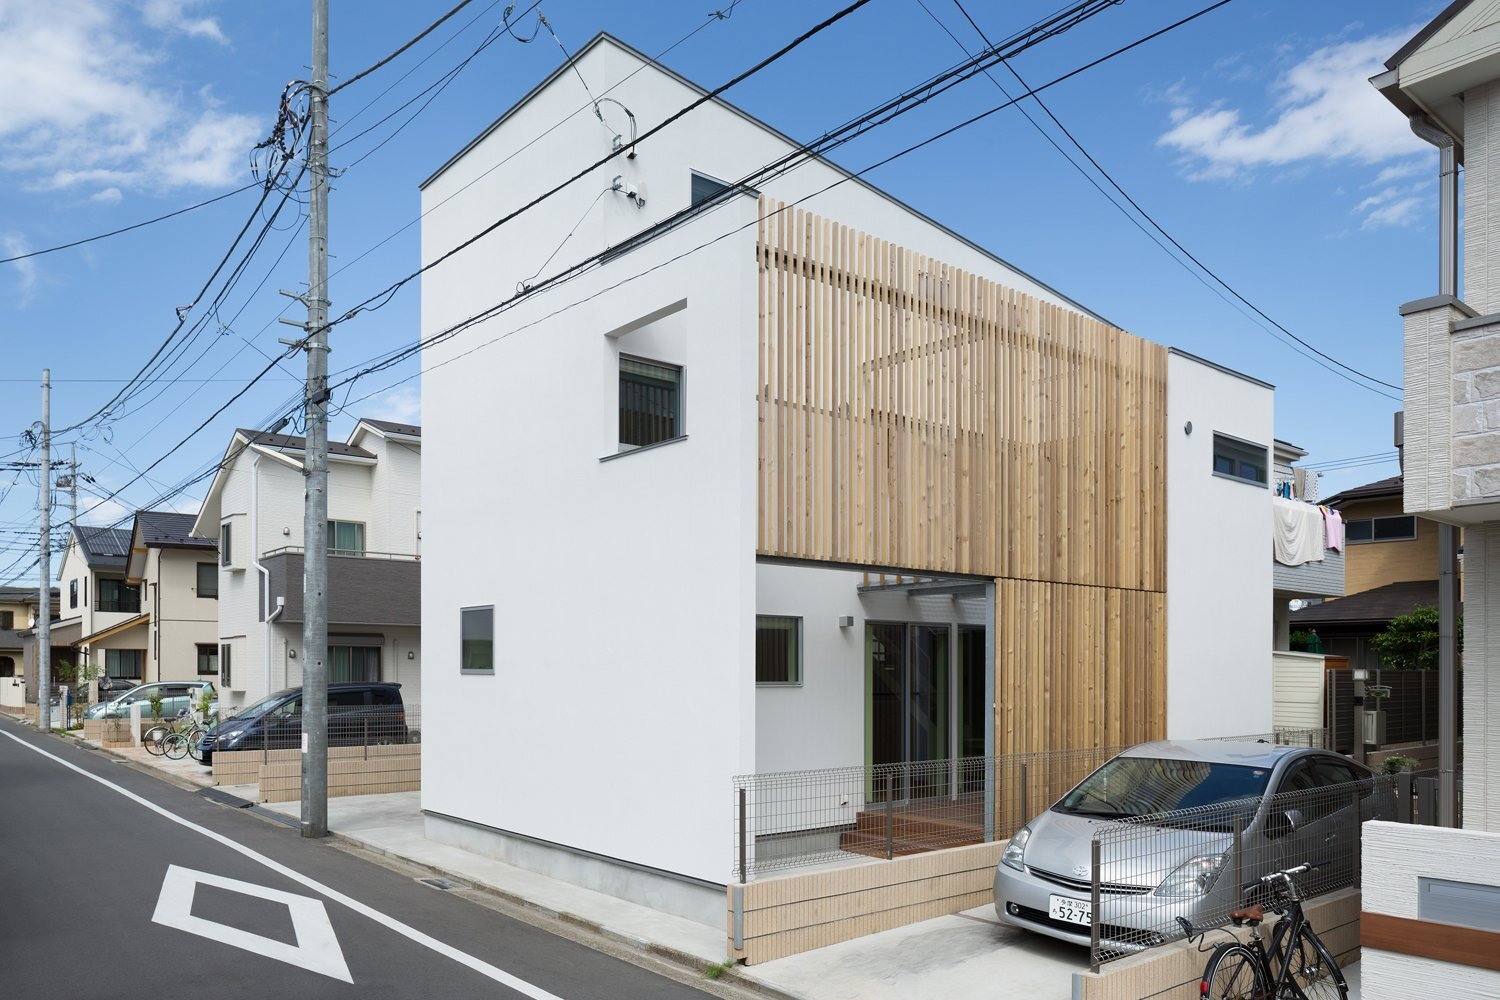 House k by yuji kimura design in tokyo japan for Small homes exterior design